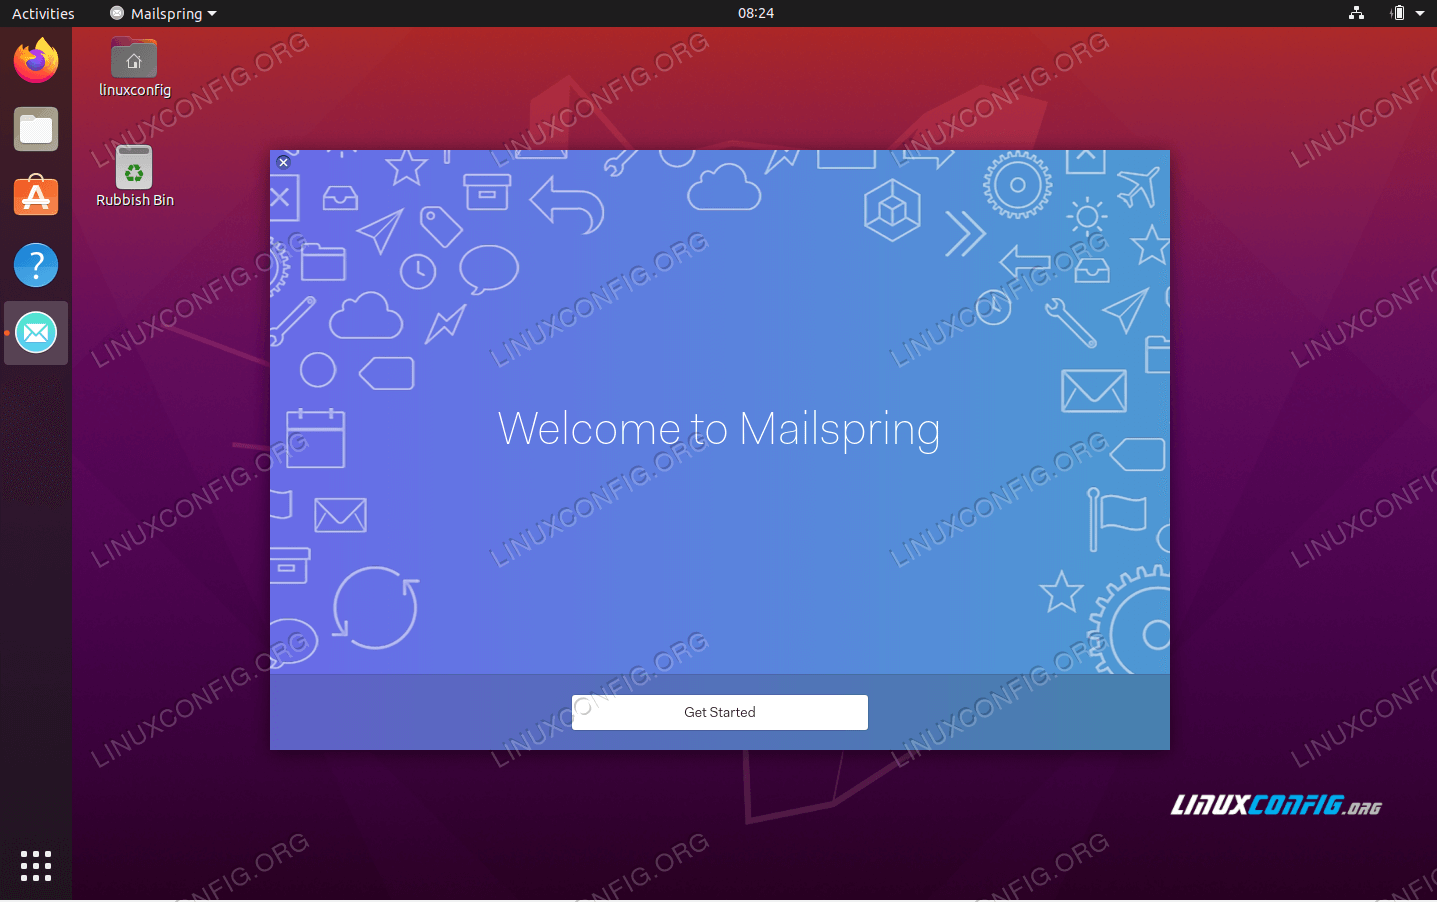 Mailspring installation on Ubuntu 20.04 Focal Fossa